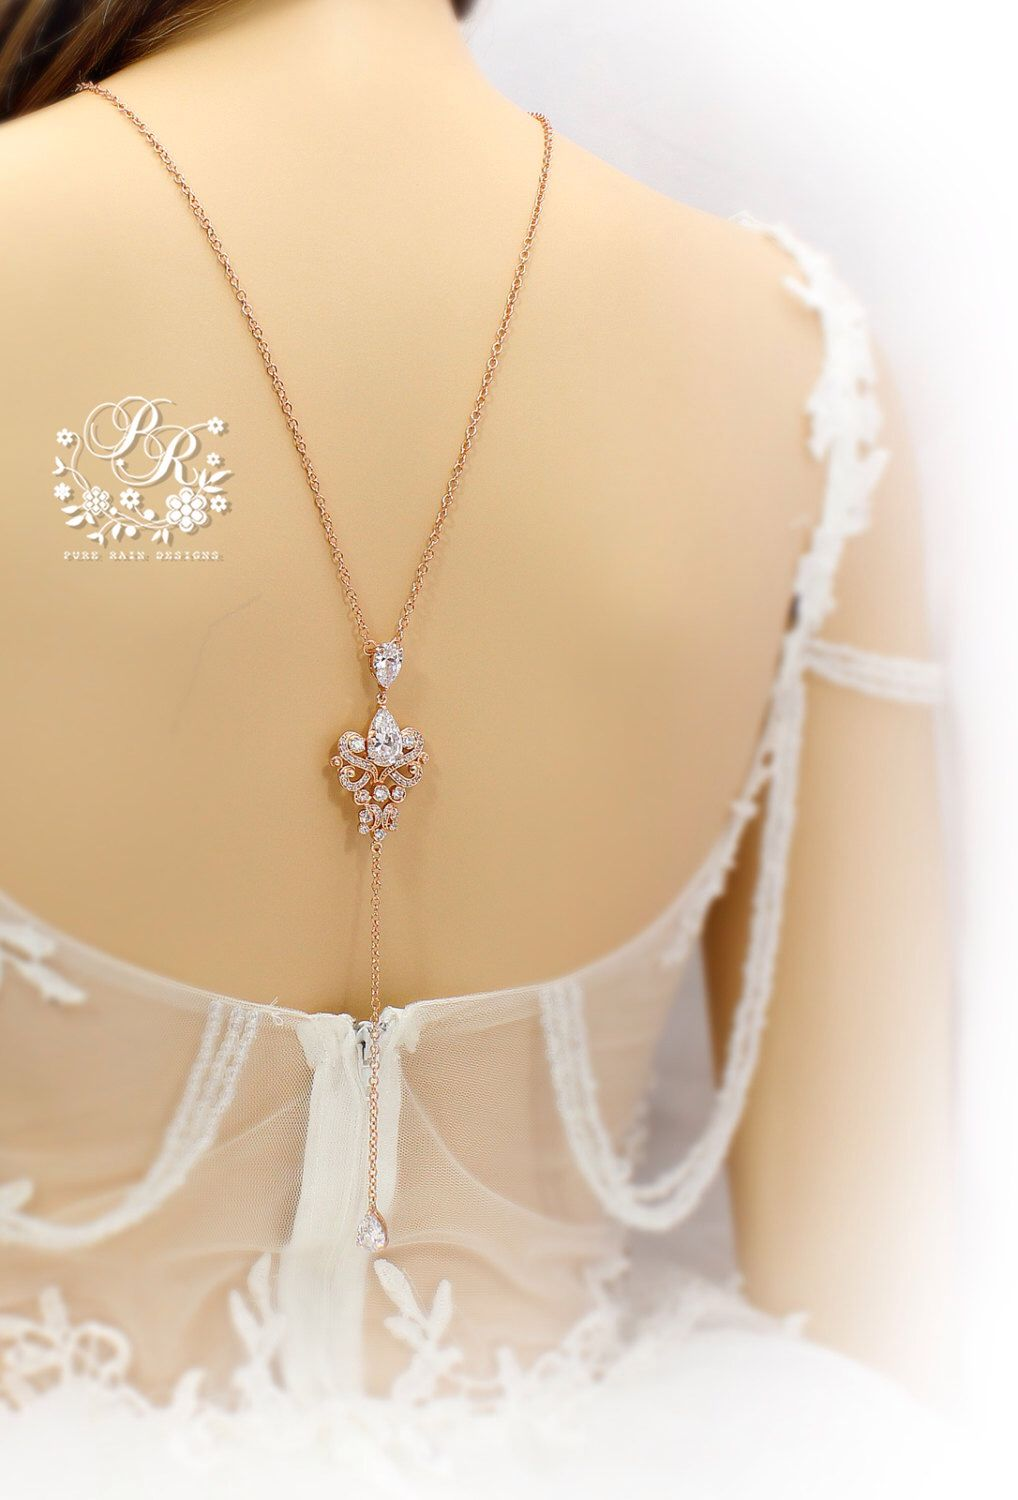 Wedding Necklace Rose Gold plated Zirconia Necklace Bridal Backdrop